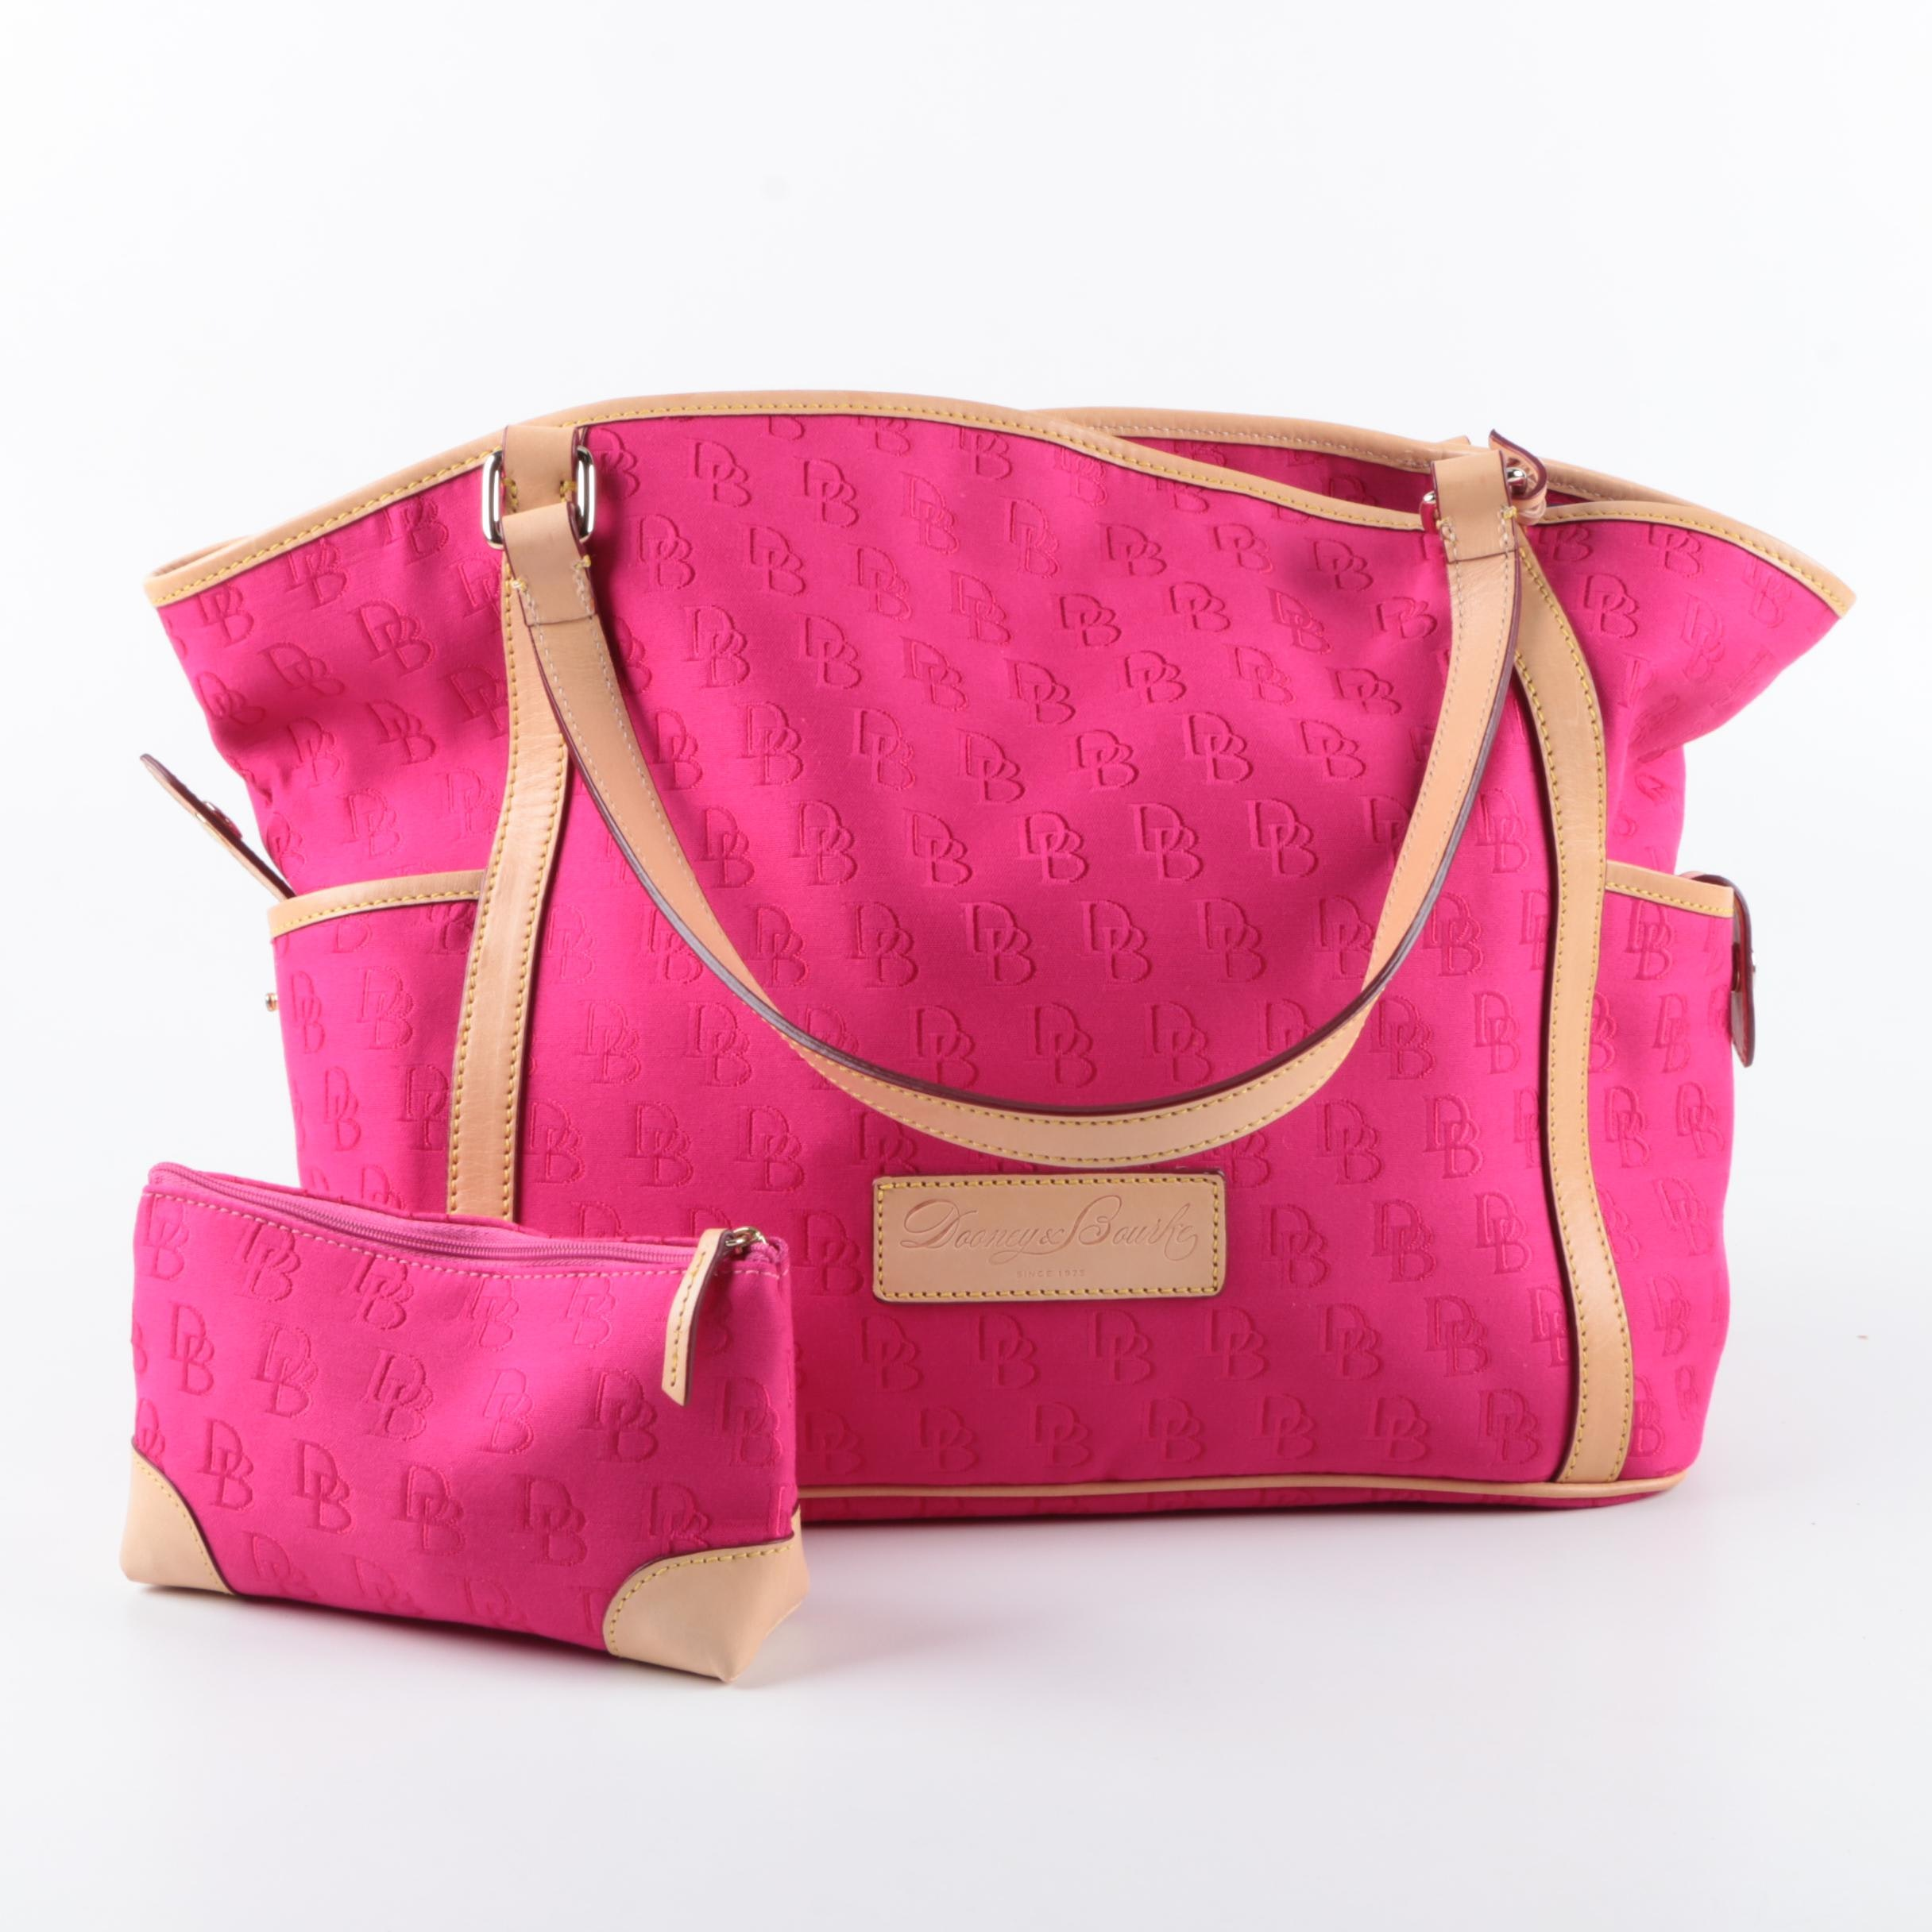 Dooney & Bourke Signature Hot Pink Canvas Tote and Pouch